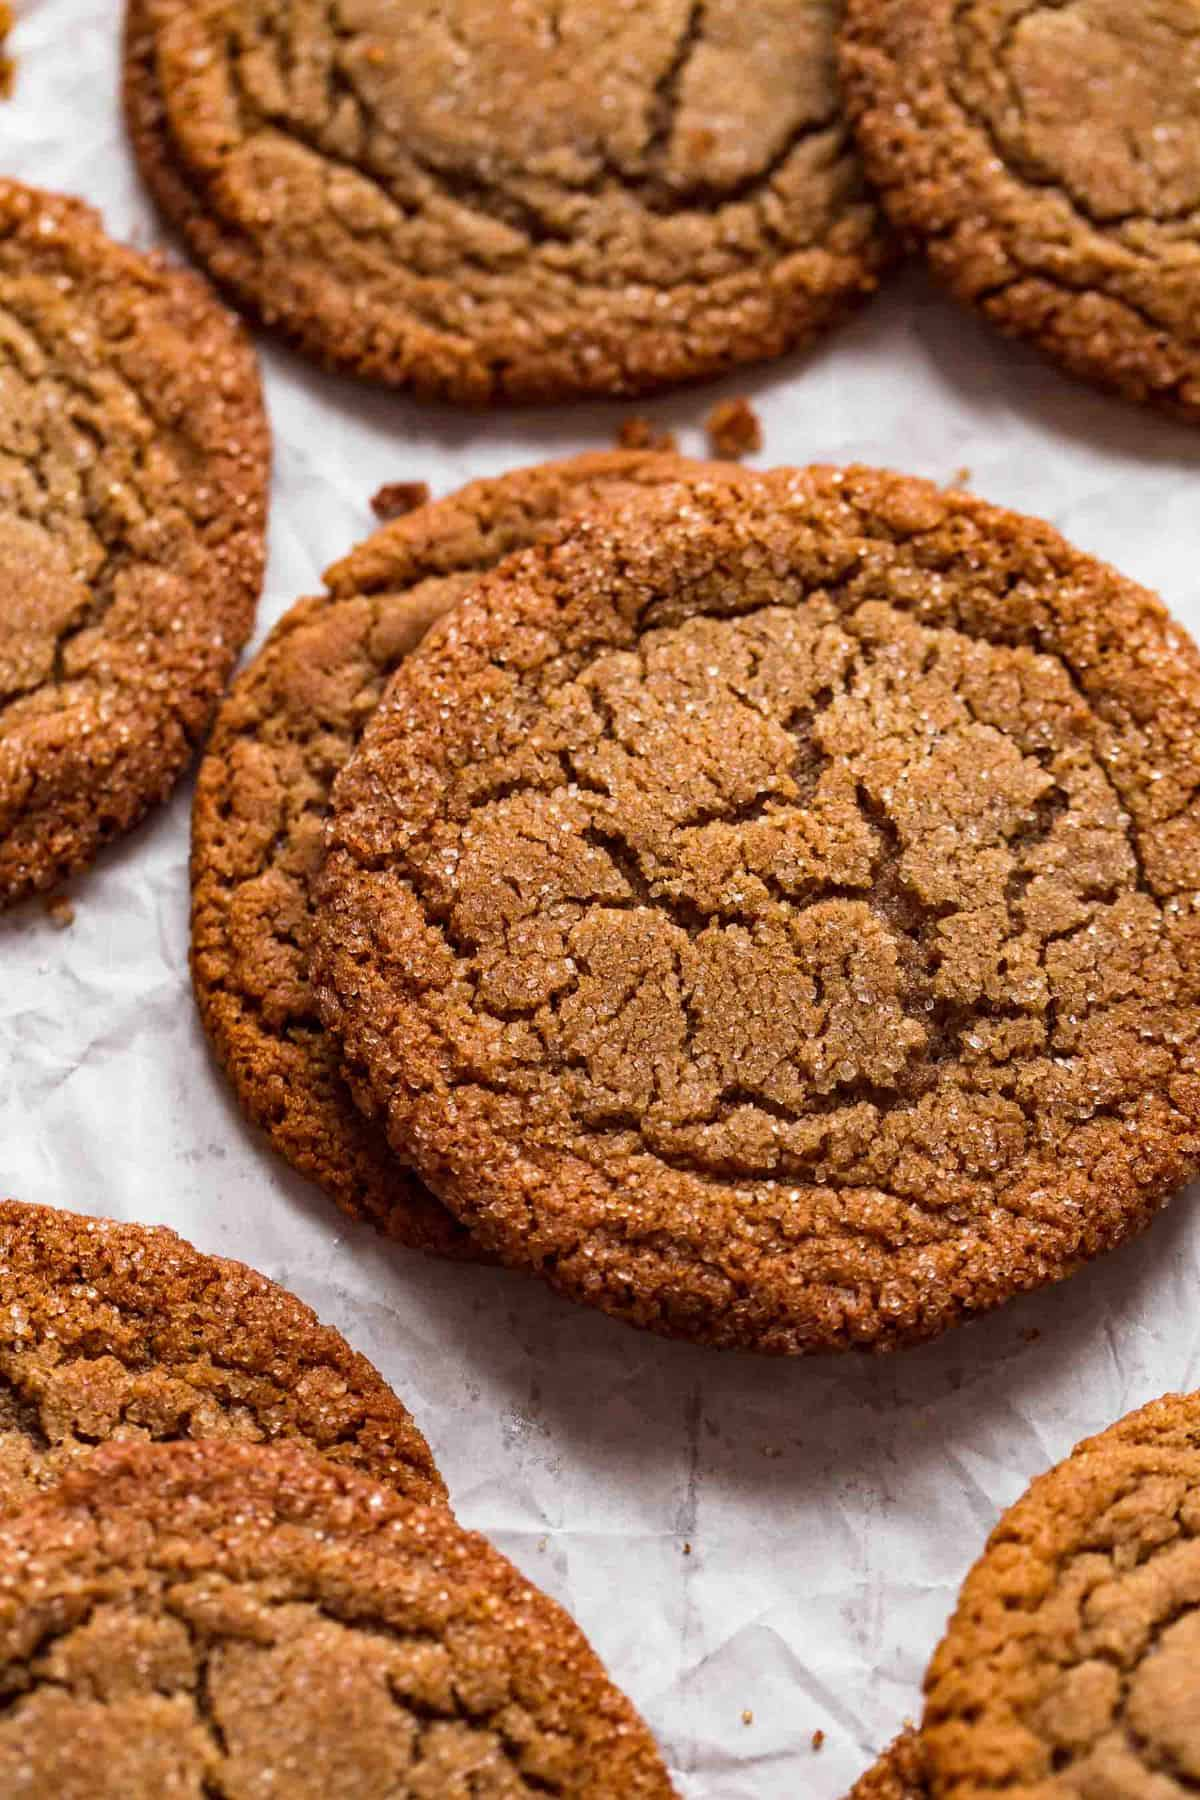 close-up view of the baked cookies